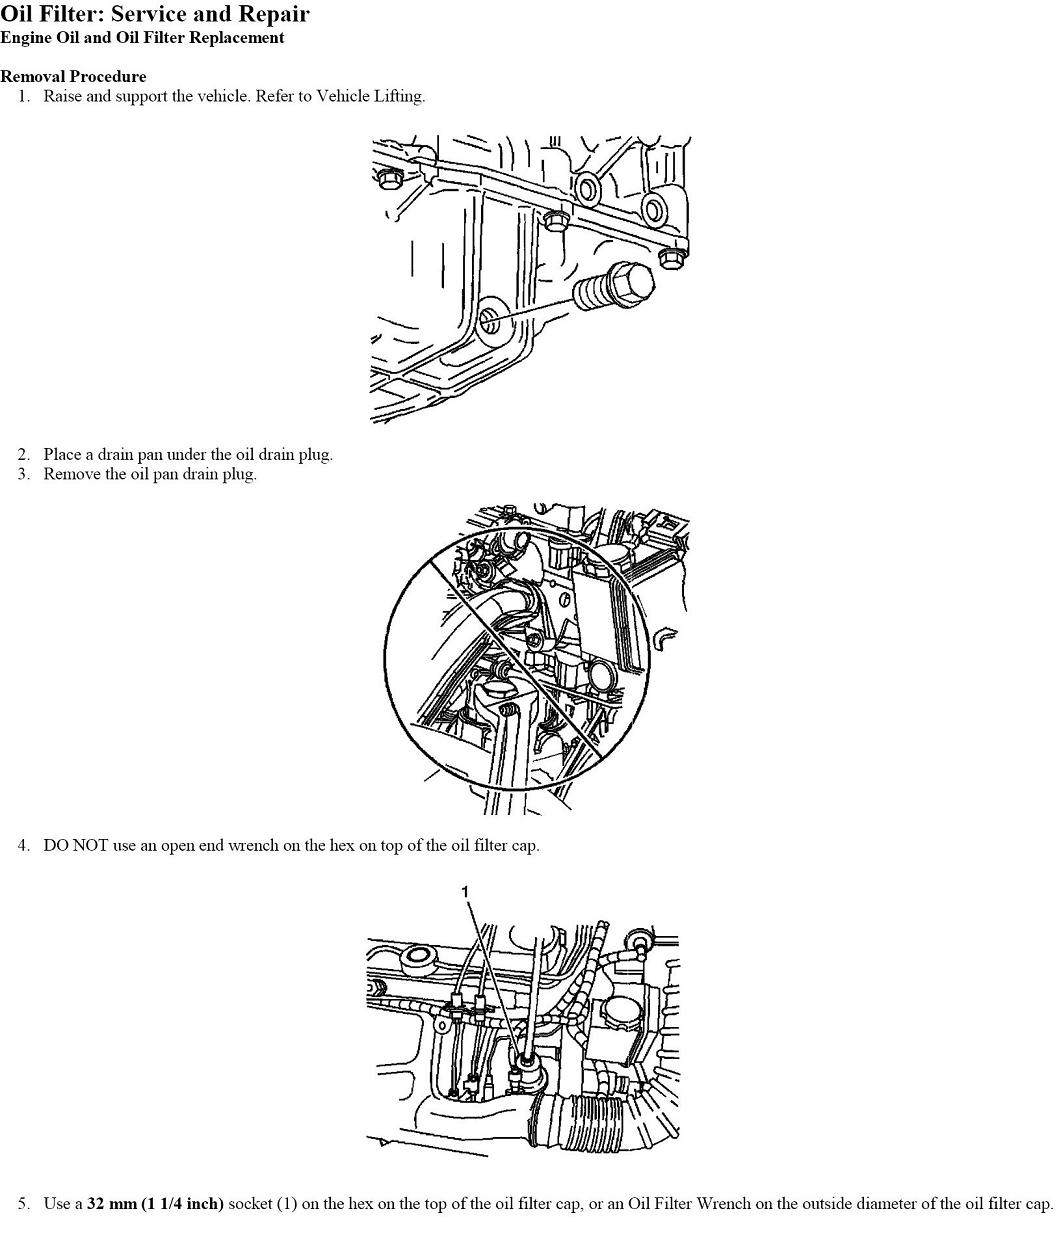 need to know location of radiator drain  oil filter and